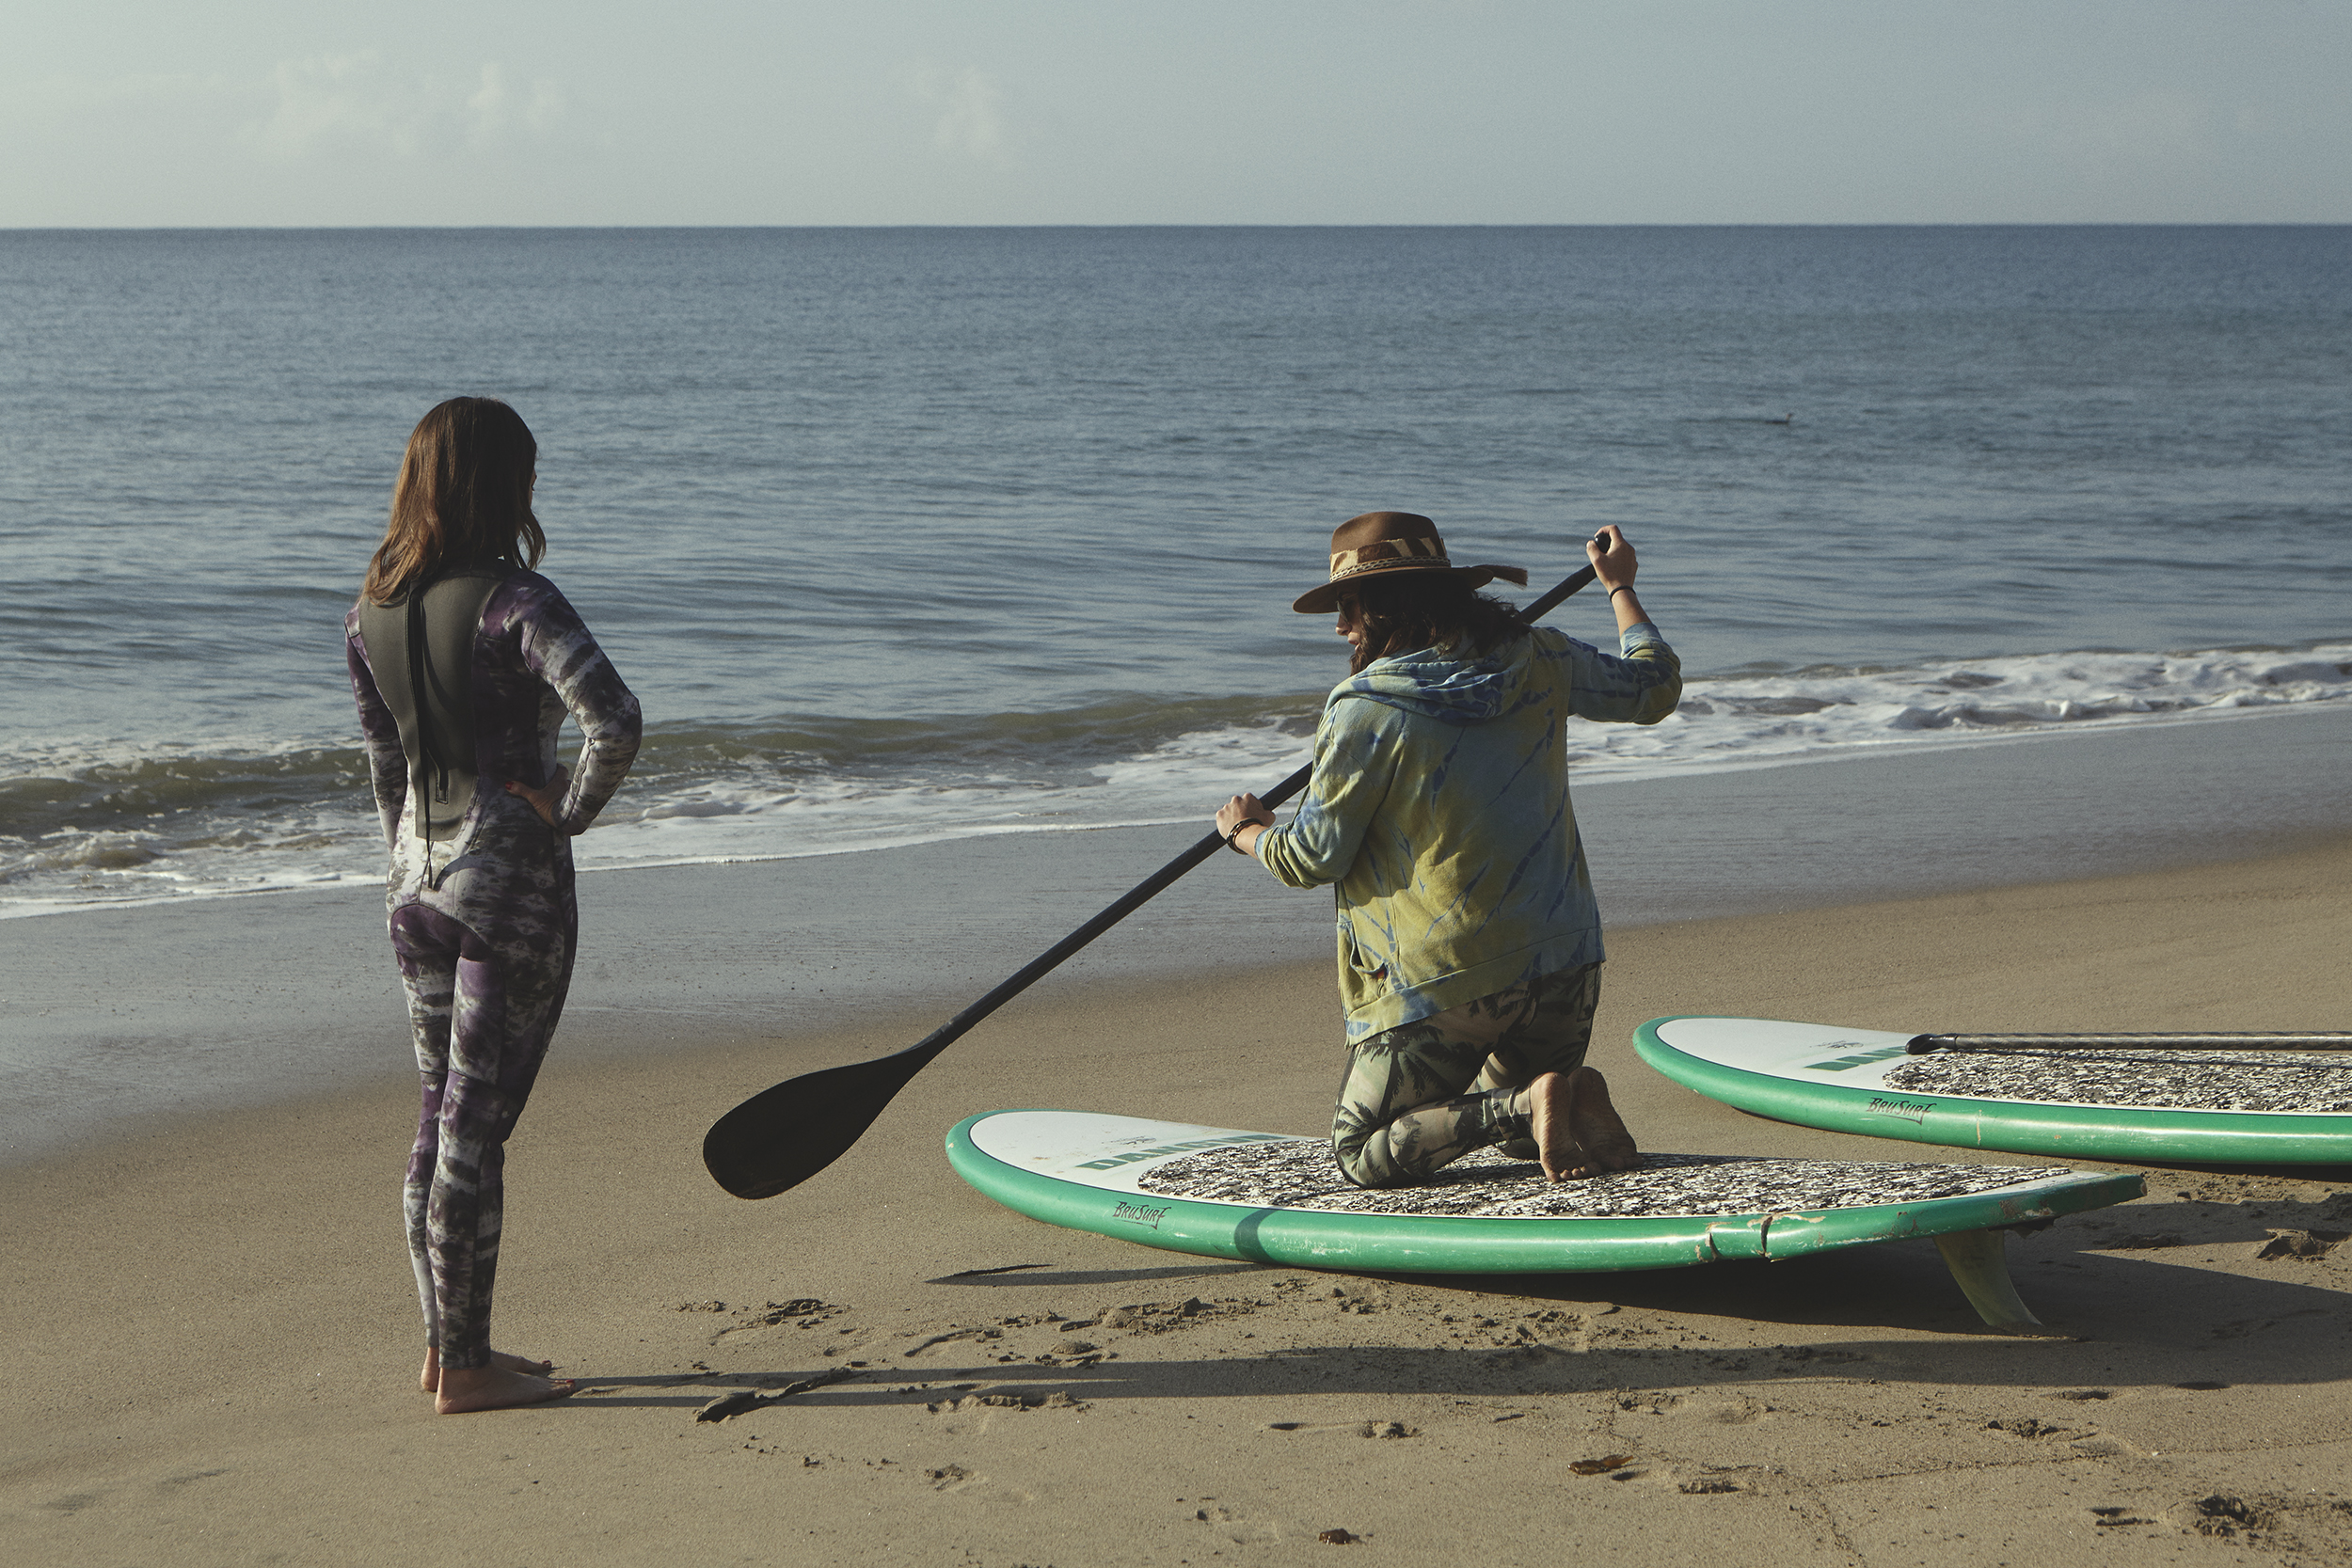 Jobi prepping Lisa for her Paddleboard Meditation